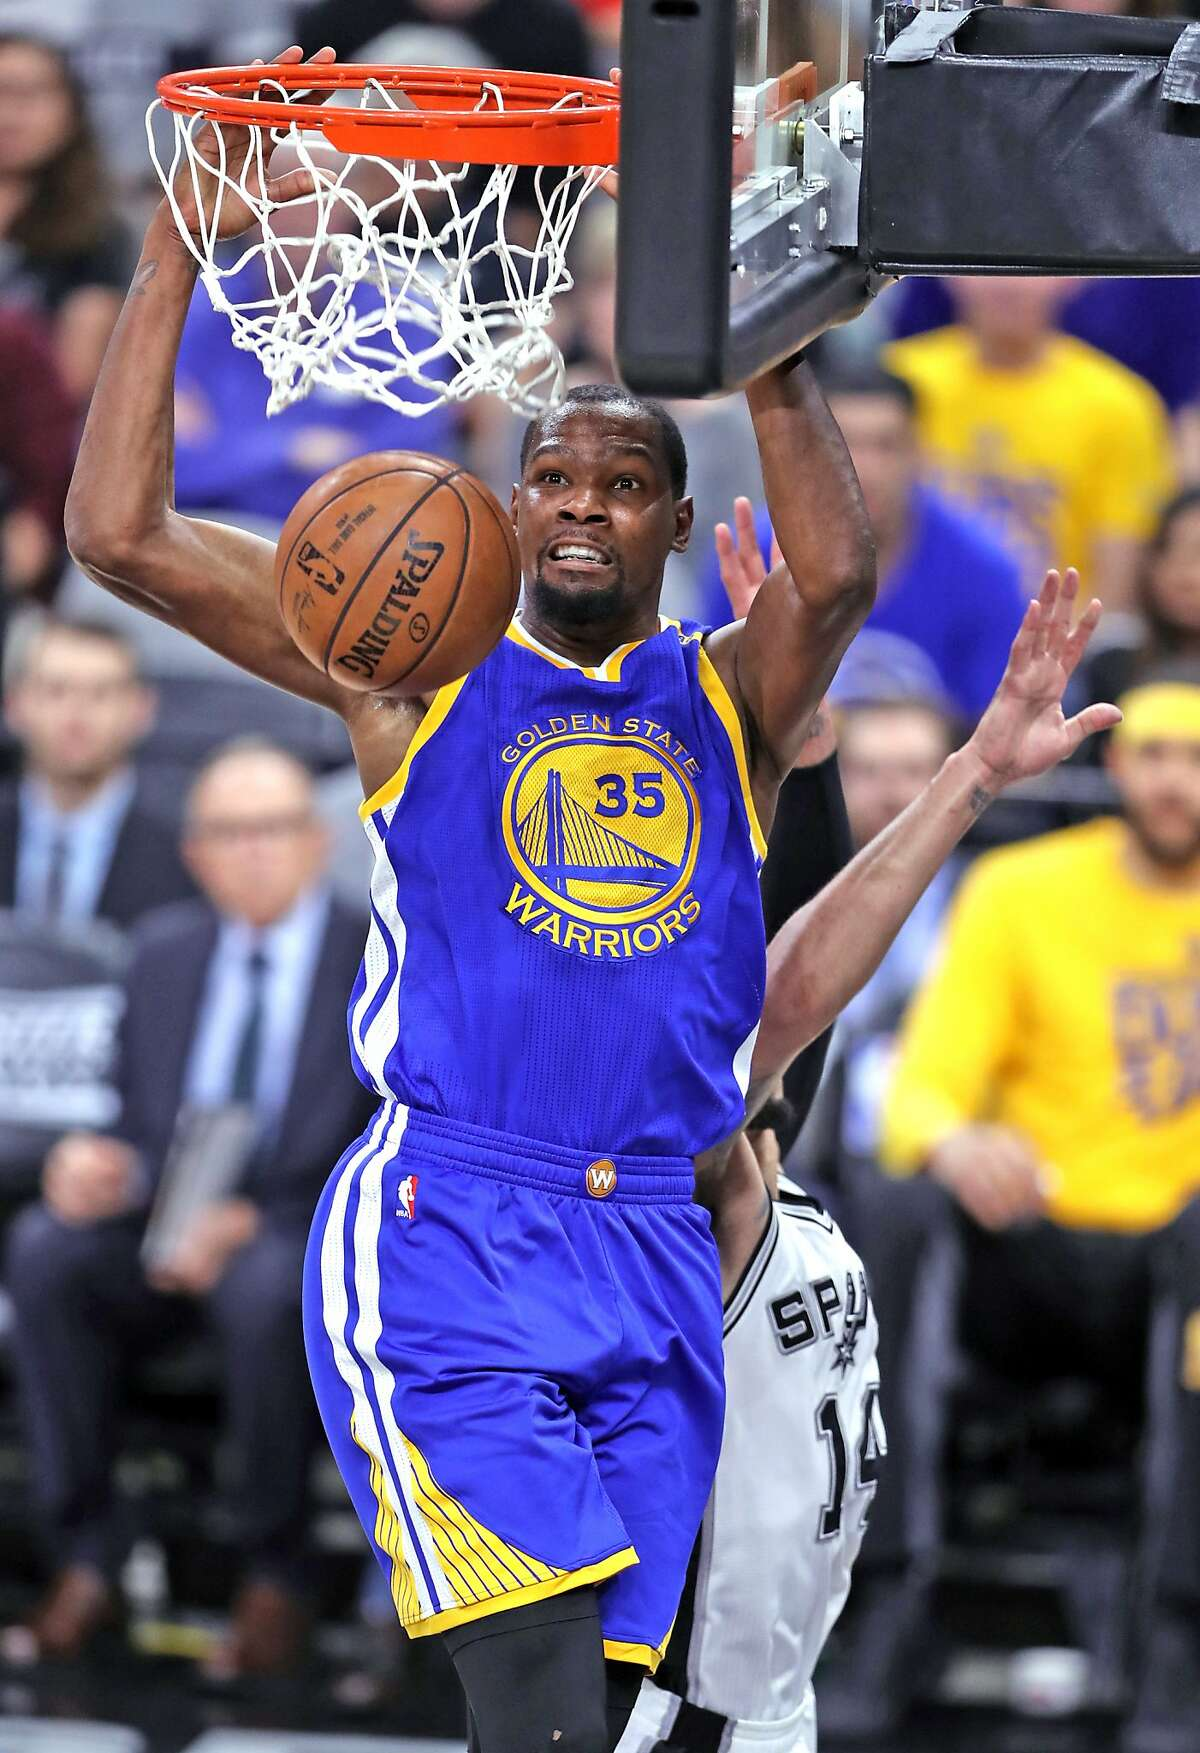 Golden State Warriors' Kevin Durant dunks against San Antonio Spurs' Danny Green in 1st quarter during Game 4 of NBA Western Conference Finals at AT&T Center in San Antonio, Texas, on Monday, May 22, 2017.